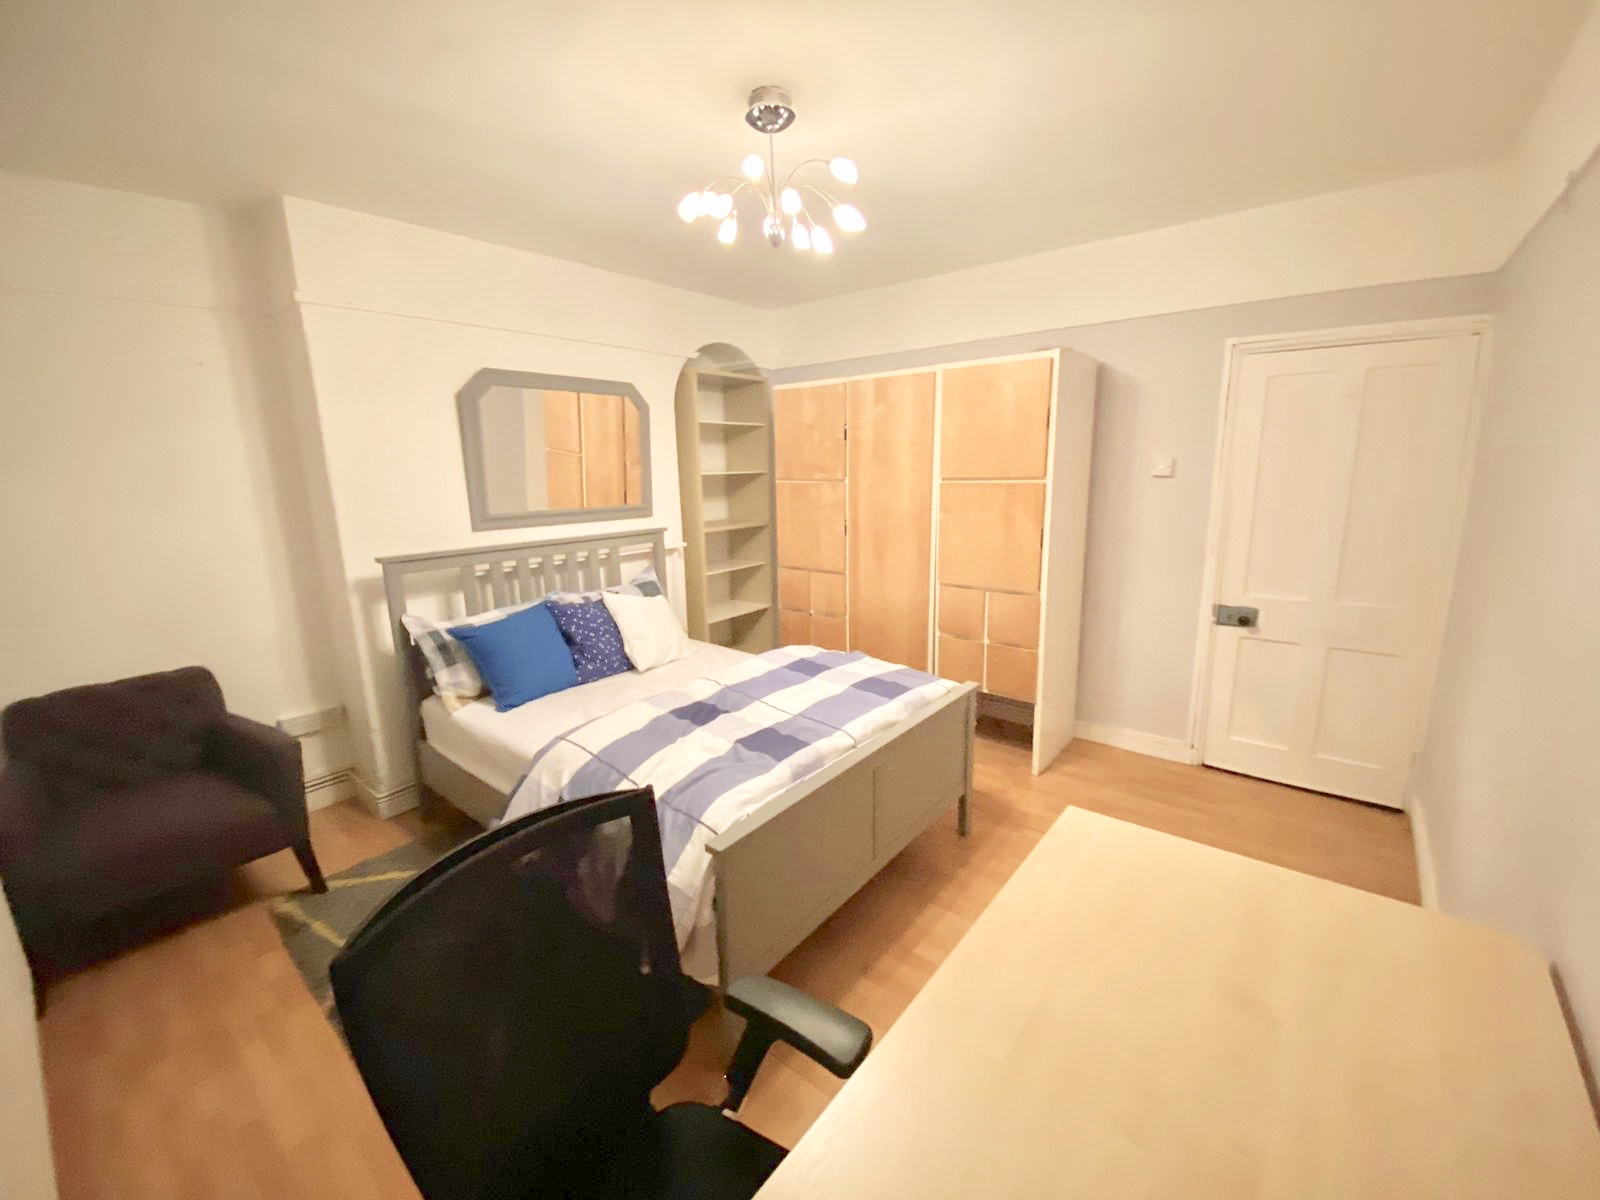 1 room in Holborn, Covent Garden, London, WC2 9ED RoomsLocal image